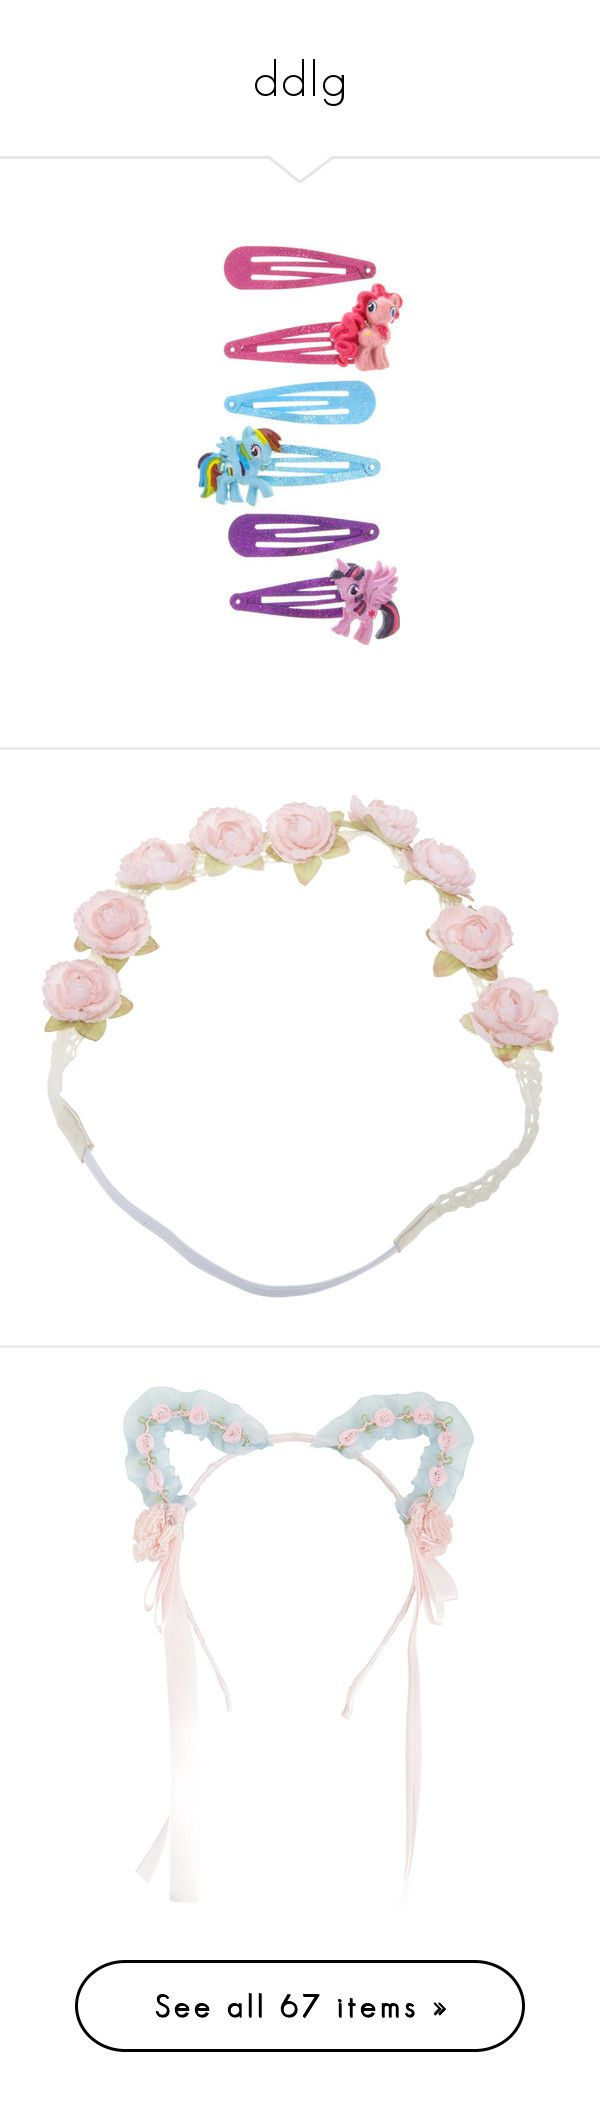 """ddlg"" by darkmist77 ❤ liked on Polyvore featuring hair, hair accessories, accessories, headbands, fillers, head, boho flower headband, flower hair accessories, crochet flower headwrap and bohemian flower headband"